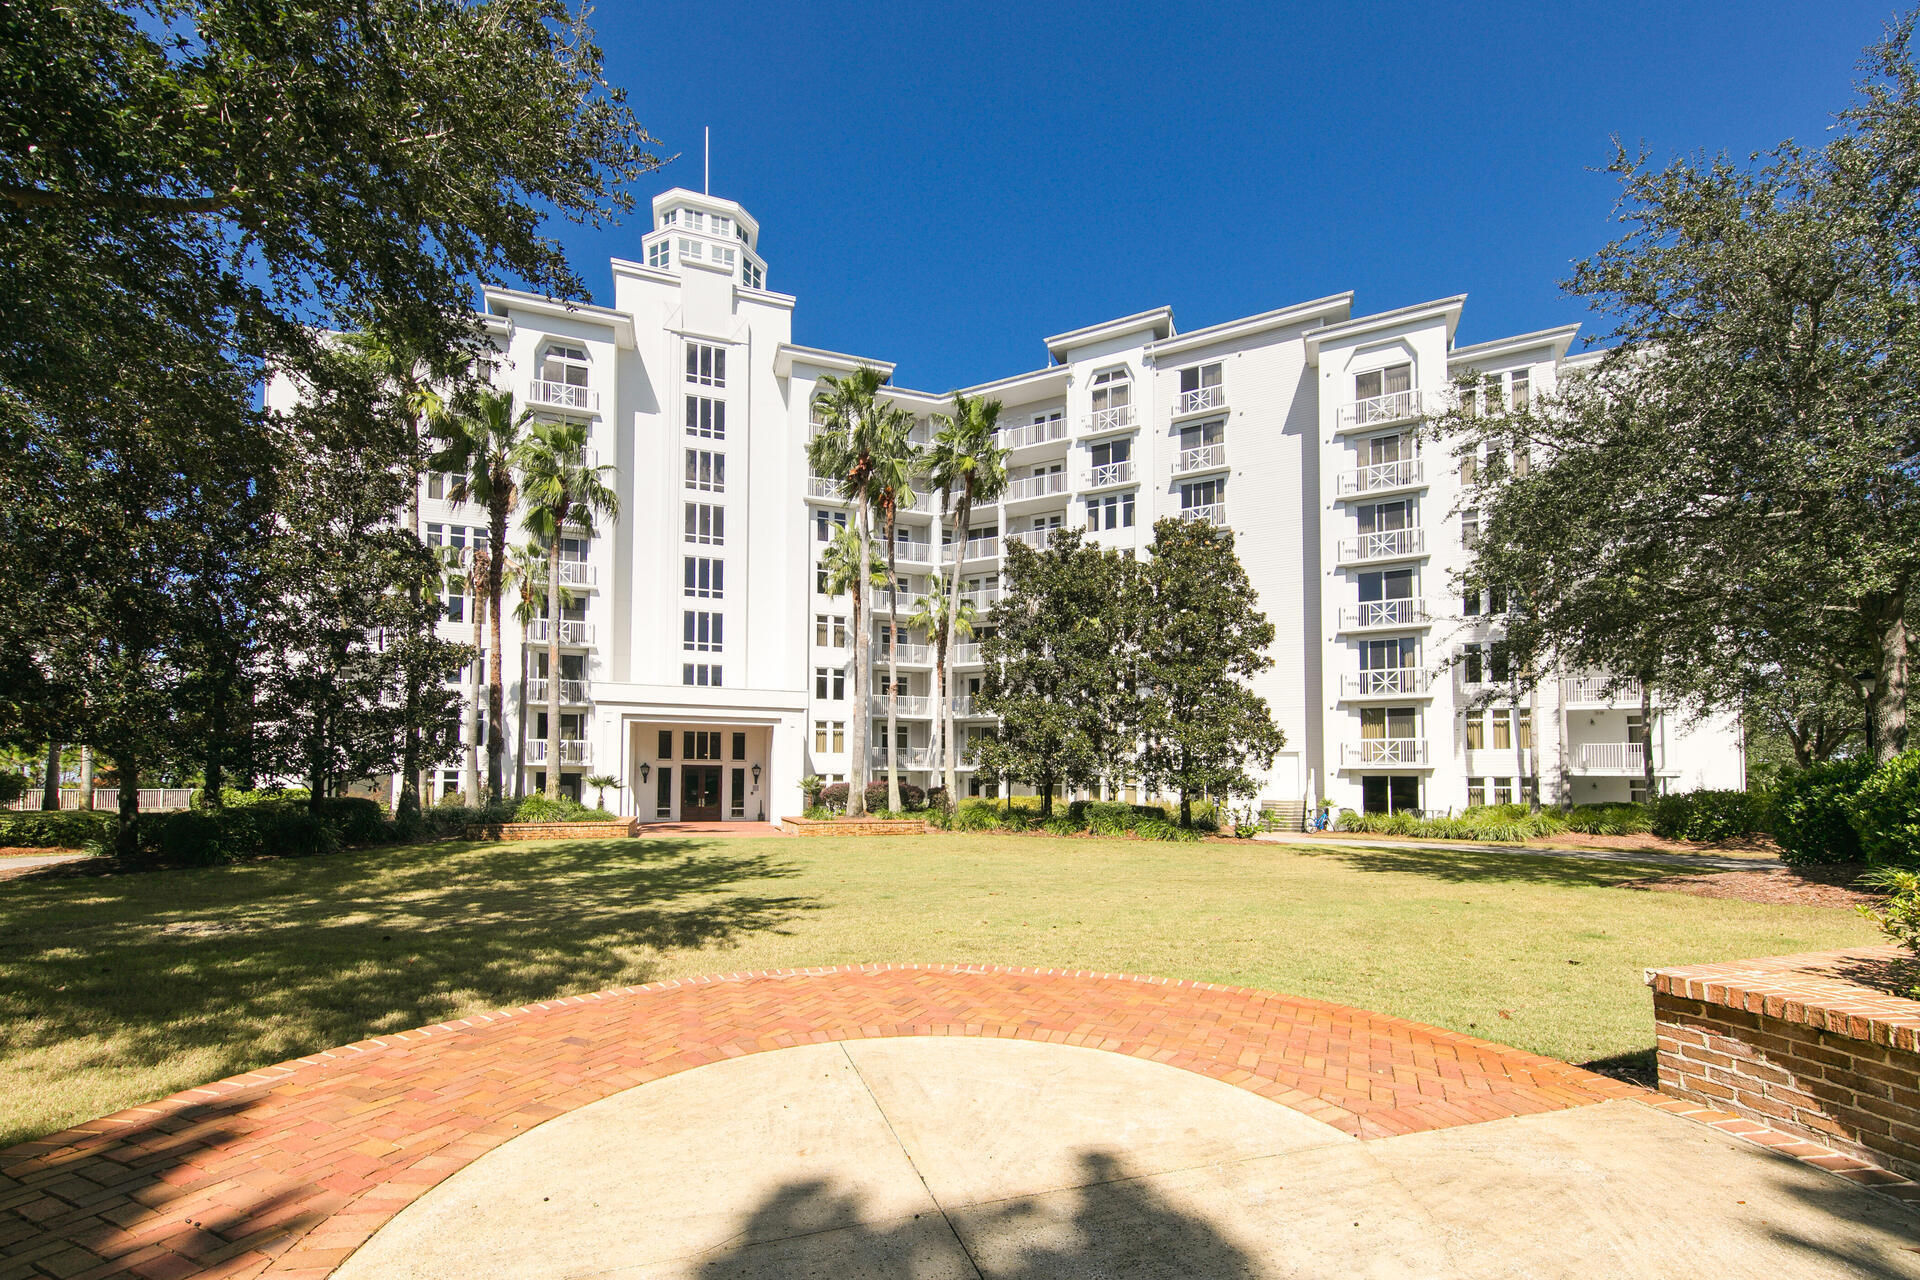 Beautiful 4th floor resort condo in the heart of Sandestin.  Only a short walk to Baytowne and all it has to offer.  This end unit overlooks the Burnt Pine Golf course hole #15.  This condo comes completely furnished.  It's self managed and rented through VRBO with heavy owner usage. From 3/14/21 to 8/13/21 its generated $15,551.  Elation offers a resort style pool, hot tub and beautifully manicured garden area.  Owners enjoy access to the terrace with 2 pools, 2 hot tubs, fitness room and Solstice Club.  An exclusive club house for owners with grills, kitchen and a large screen porch overlooking the bay, perfect for the Tuesday night firework show.  Call me today!